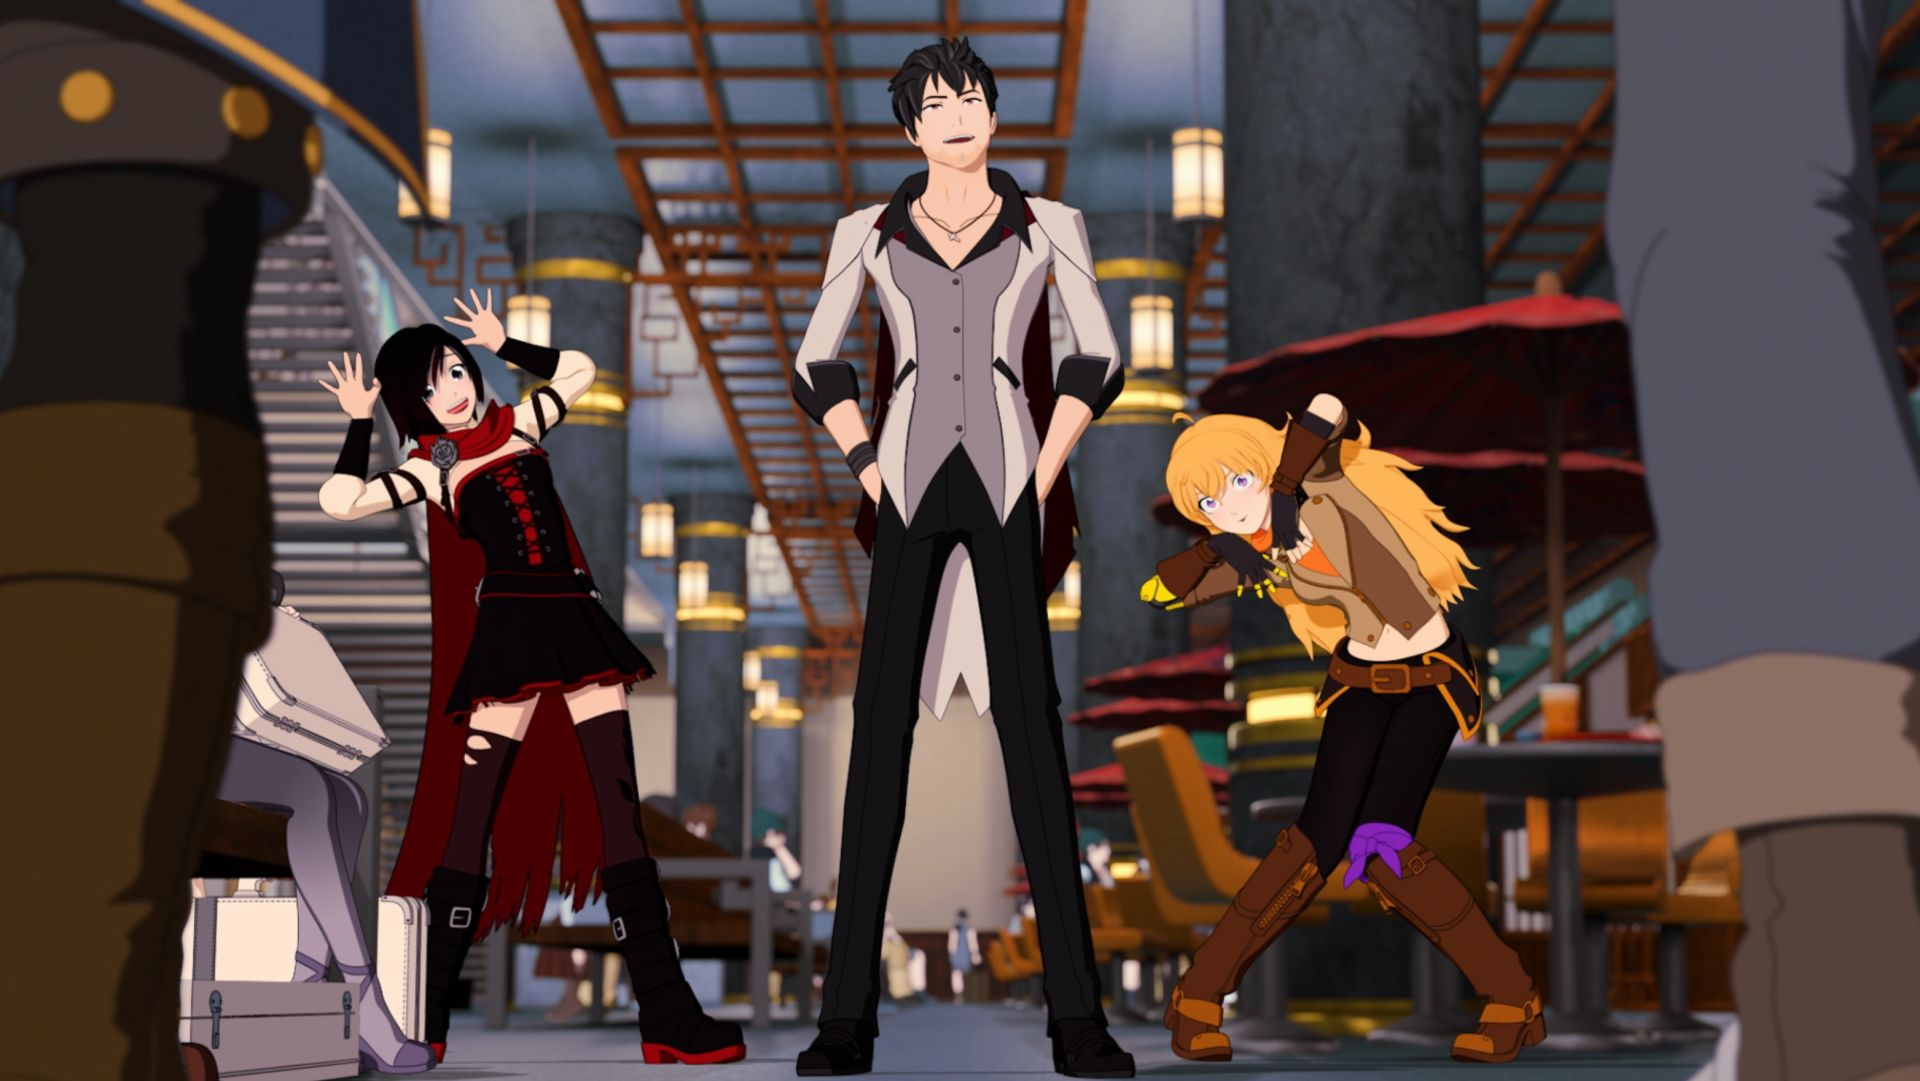 Check Out This Fun Clip For Rwby Volume 6 Who Needs Bodyguards Geektyrant Share rwby volume 6 to your friends! fun clip for rwby volume 6